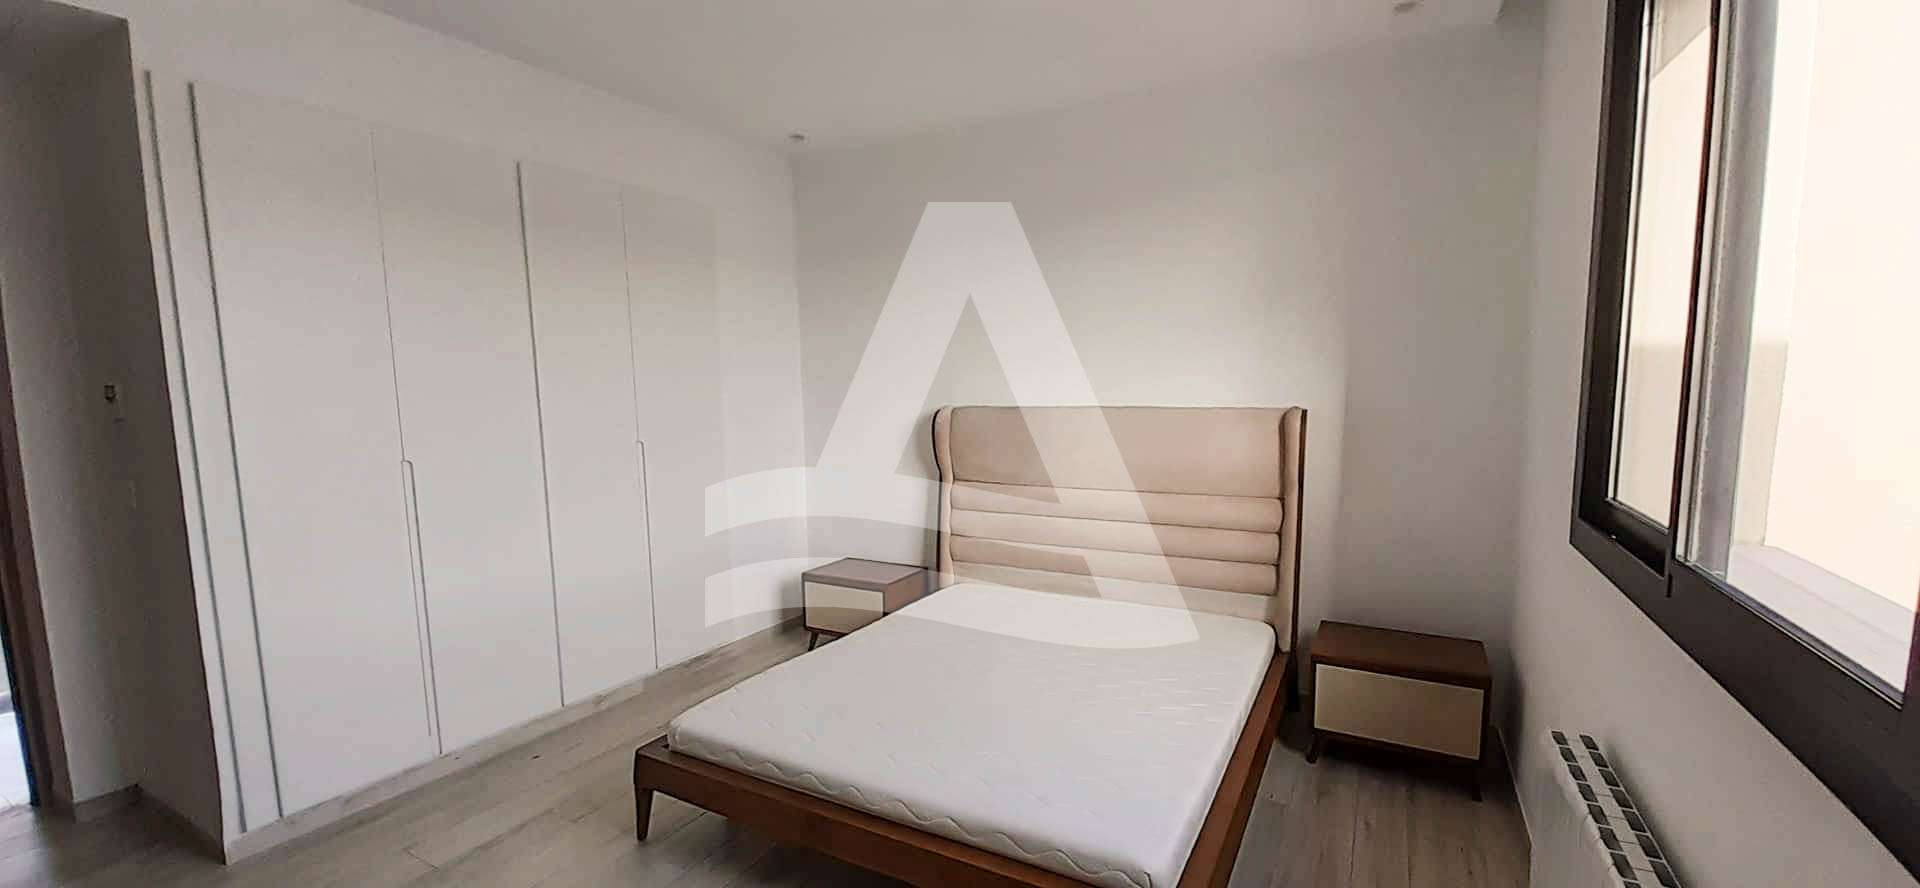 httpss3.amazonaws.comlogimoaws10502083721611672460Appartement_la_marsa_tunis_9_sur_16-1